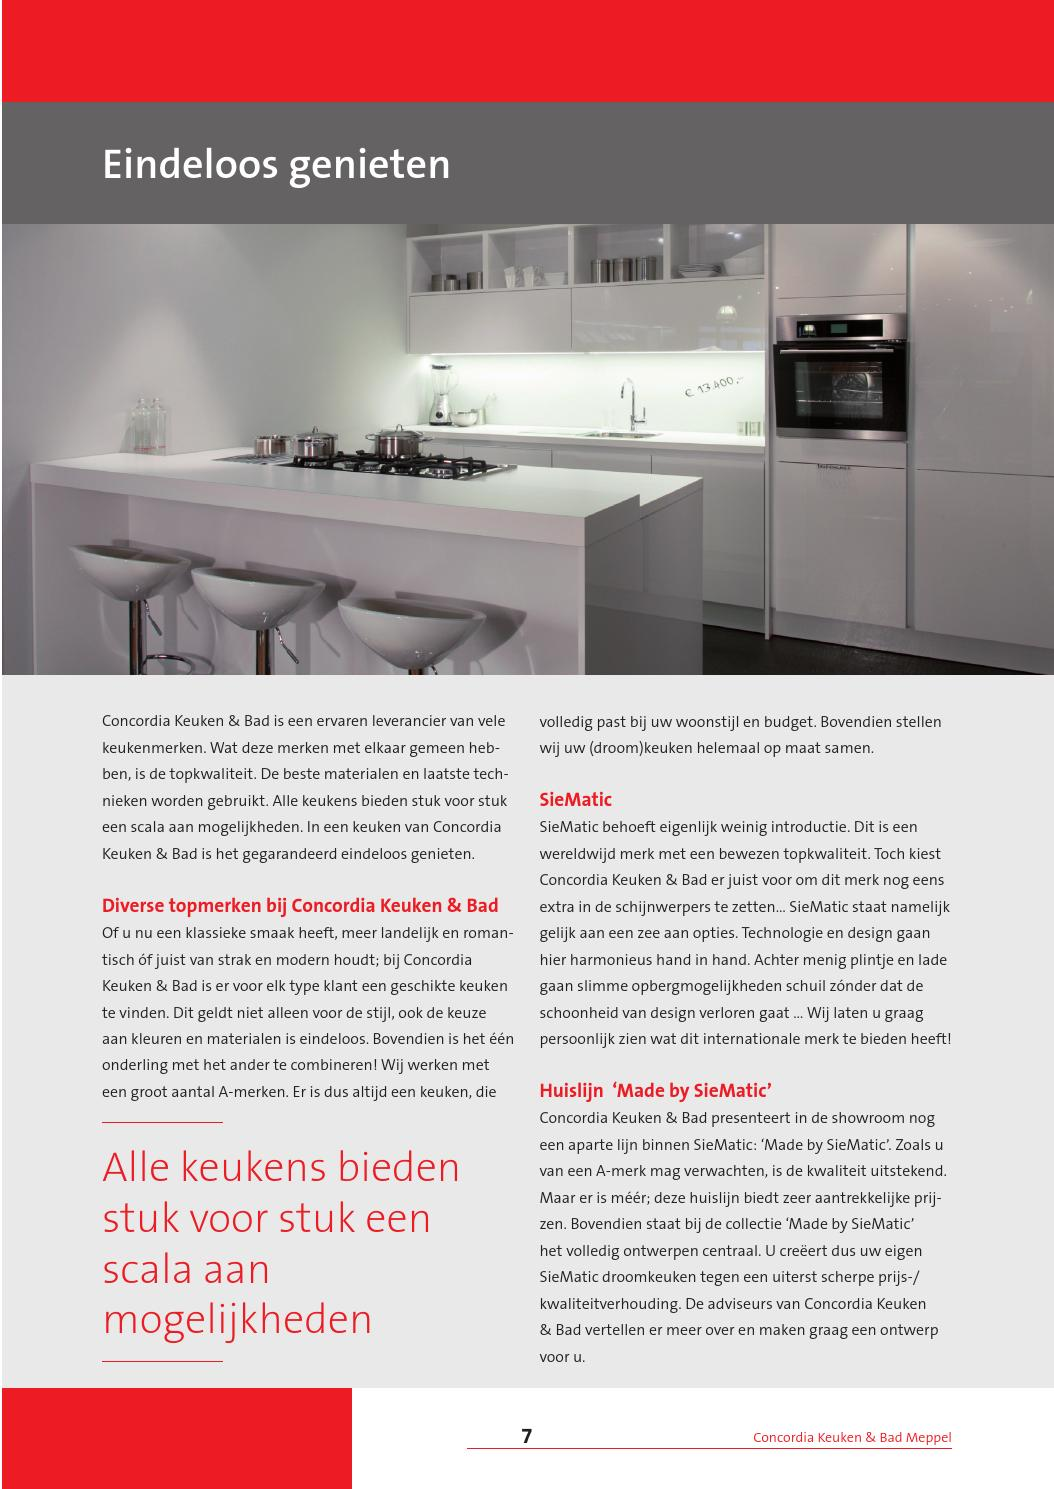 Keuken Merken Concordia By Great Magazines Issuu